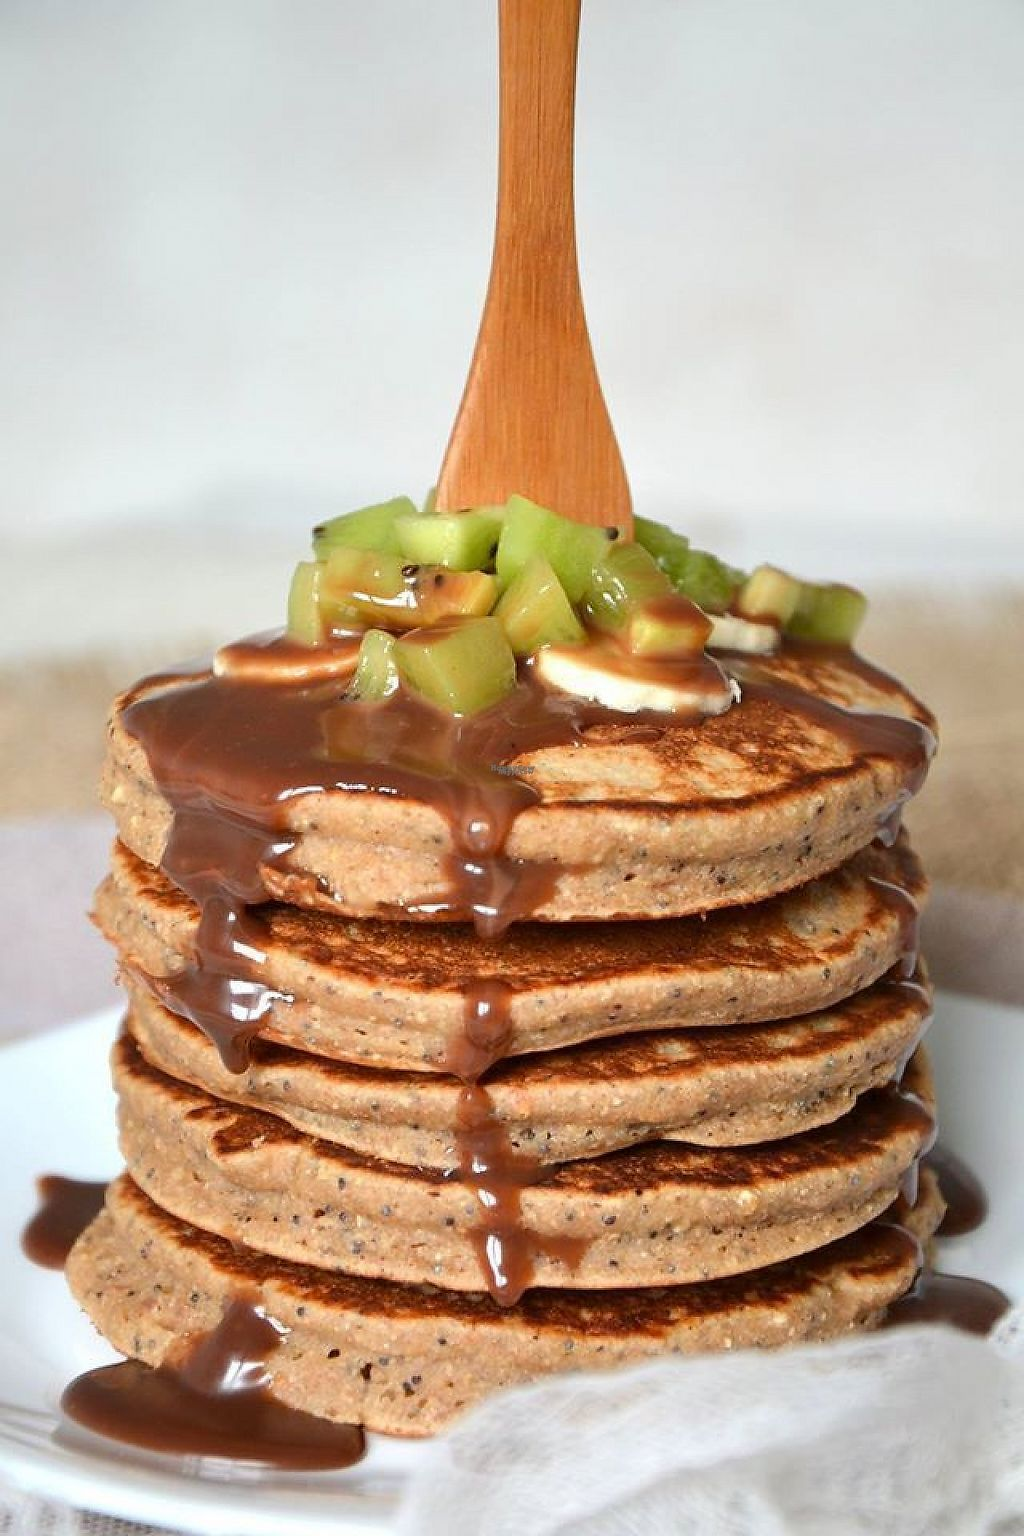 """Photo of La Vie Claire  by <a href=""""/members/profile/community"""">community</a> <br/>vegan pancakes  <br/> February 4, 2017  - <a href='/contact/abuse/image/72032/221884'>Report</a>"""